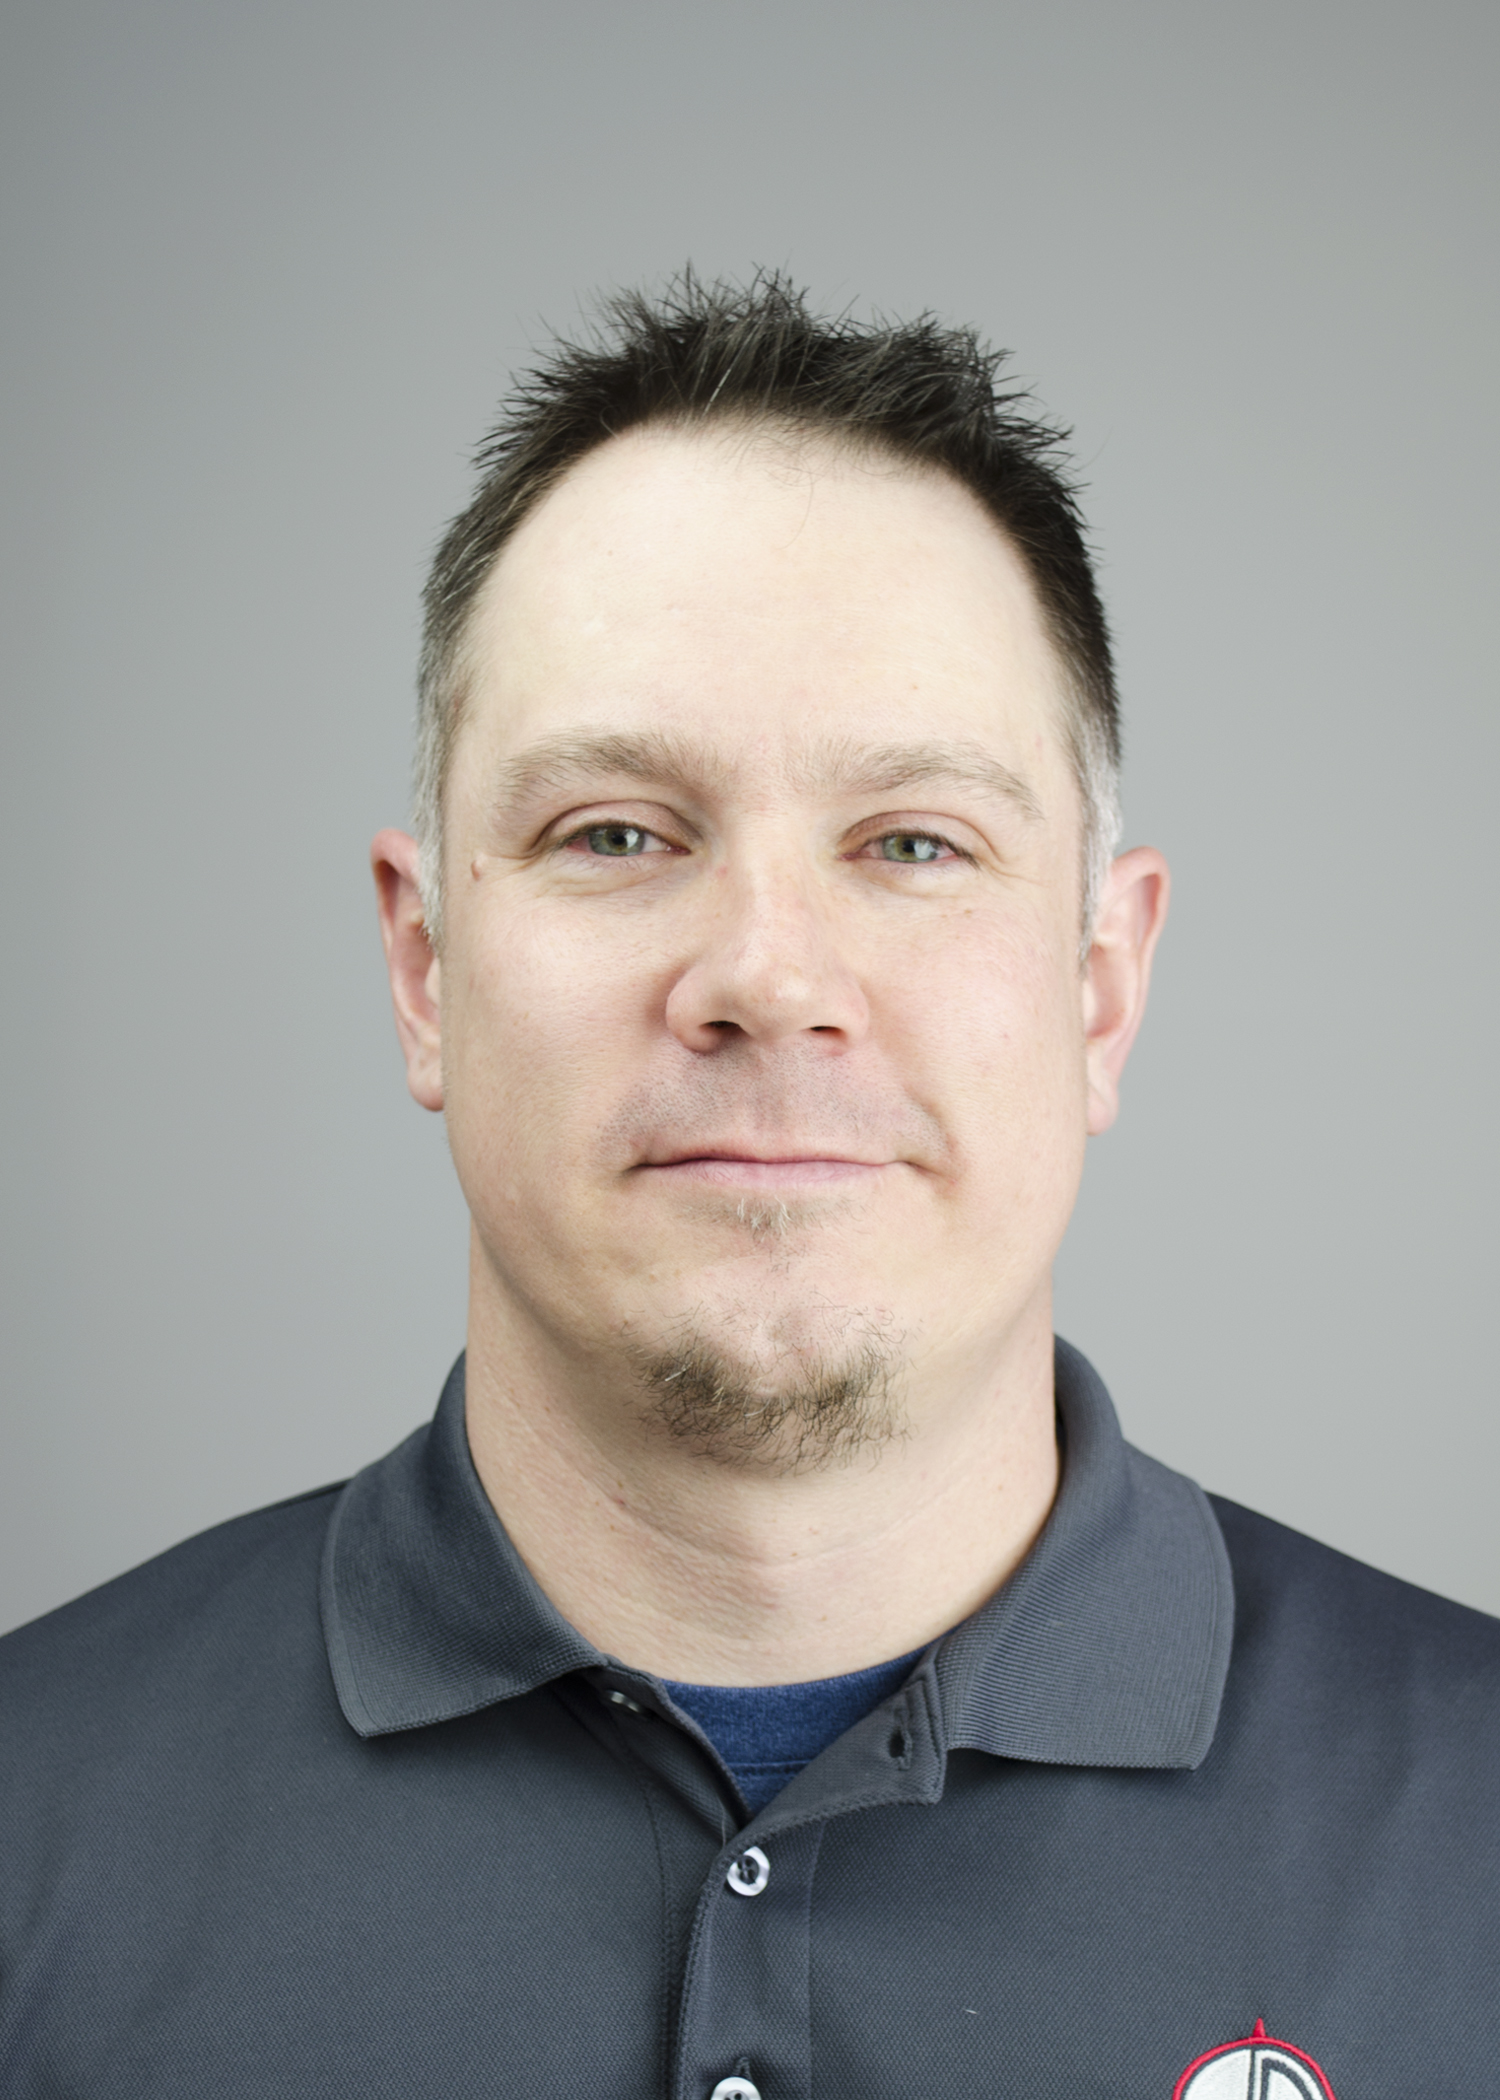 ROB PEALER , Project Manager